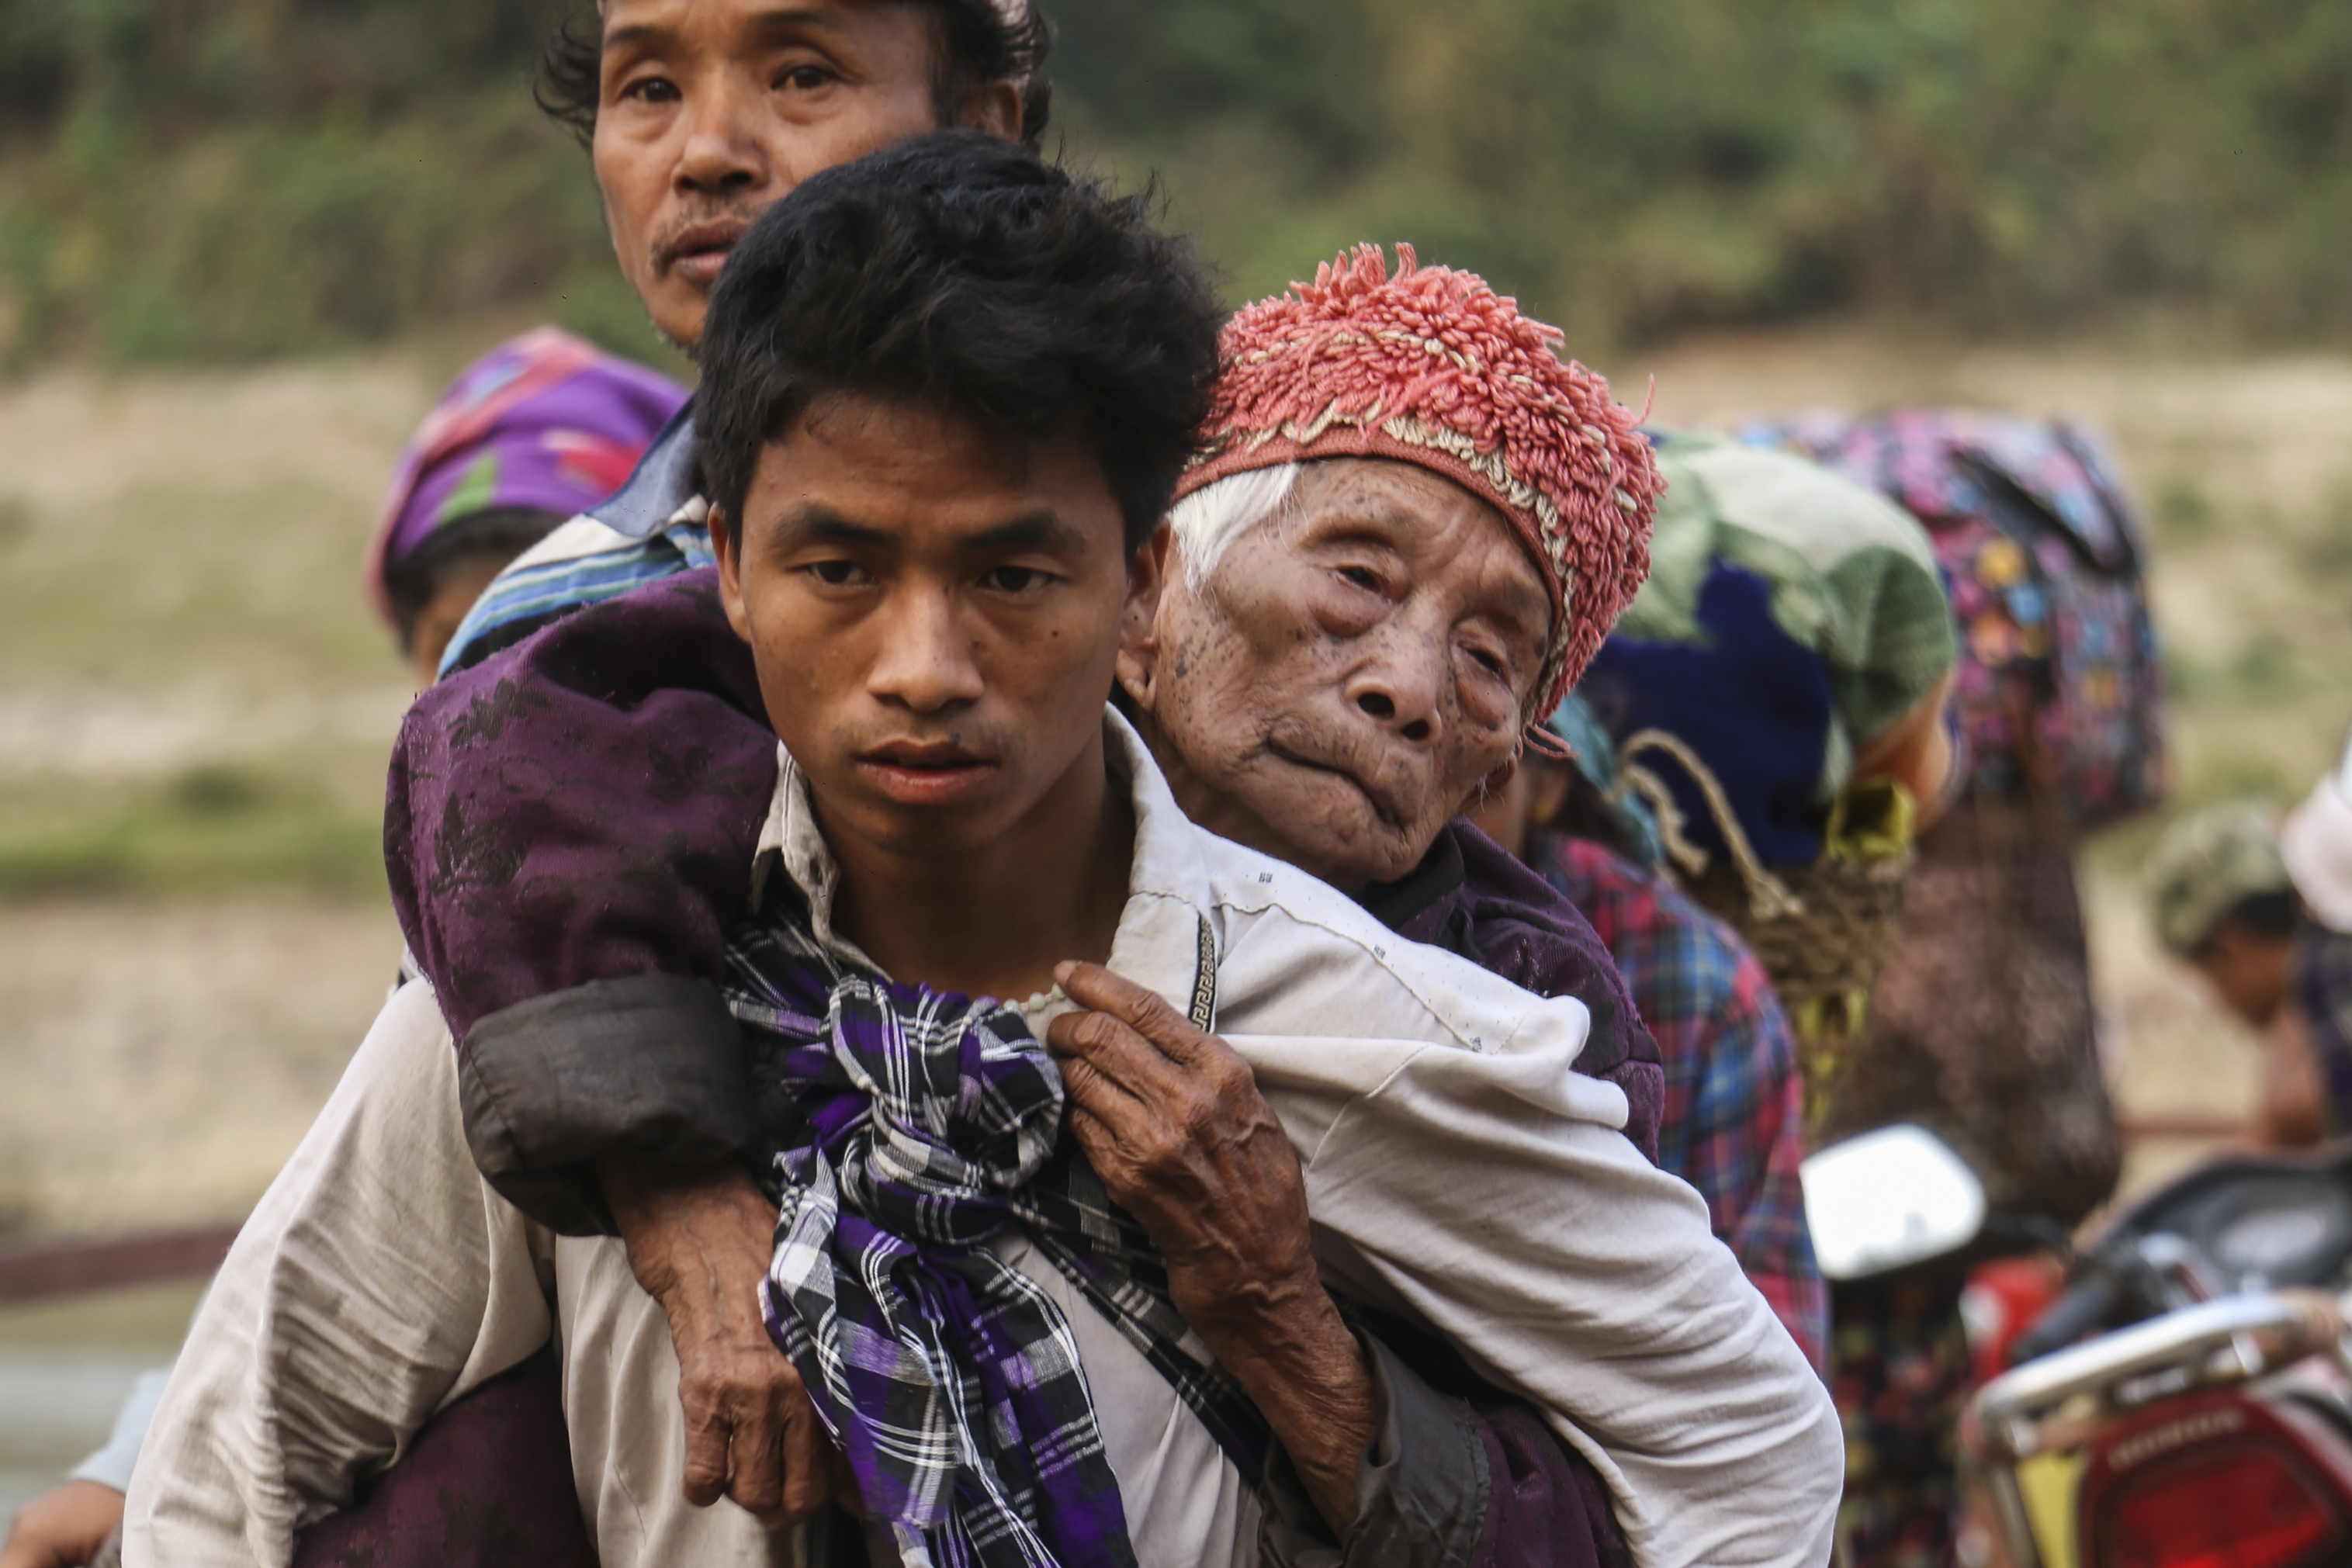 This picture taken on April 26, 2018 shows displaced Kachin residents crossing Malikha river to escape the fighting in Injanyan village near Myitkyina, Myanmar's Kachin state.